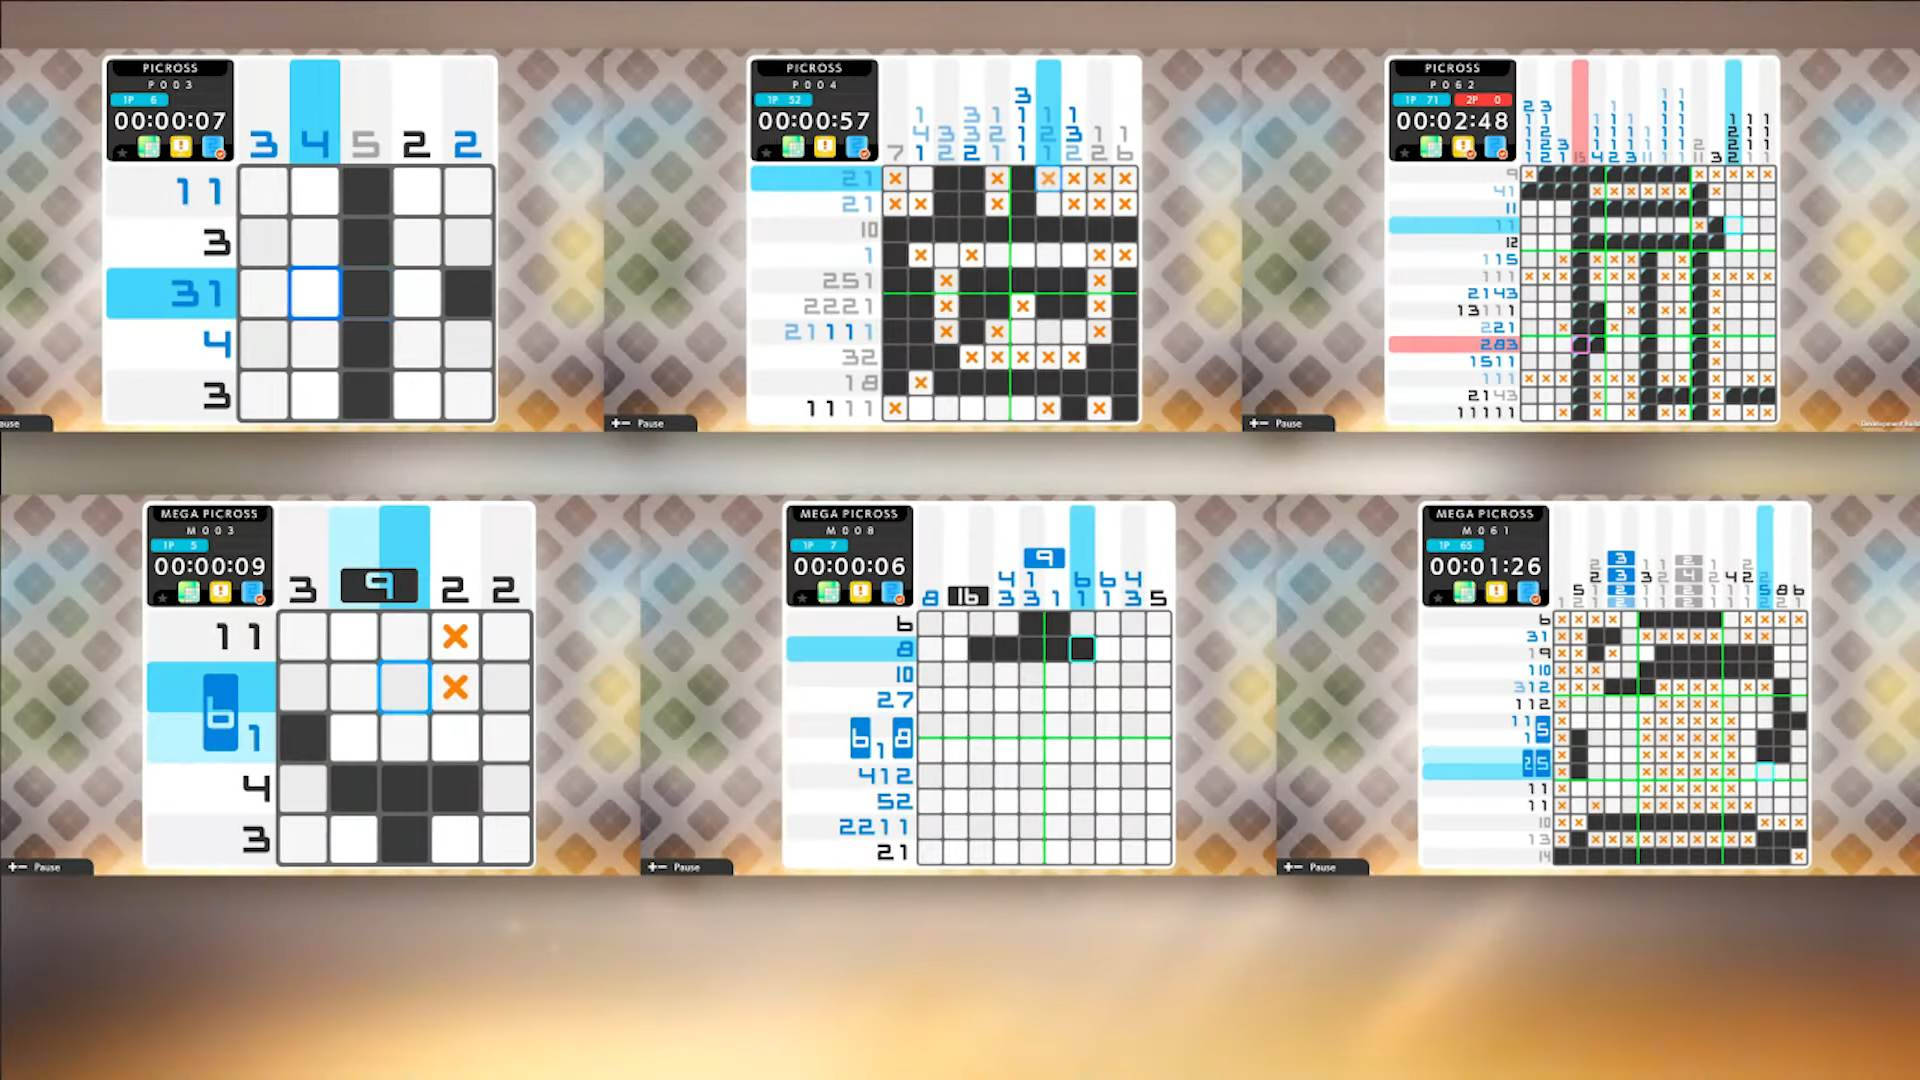 Picross S6 is coming to Switch next week screenshot